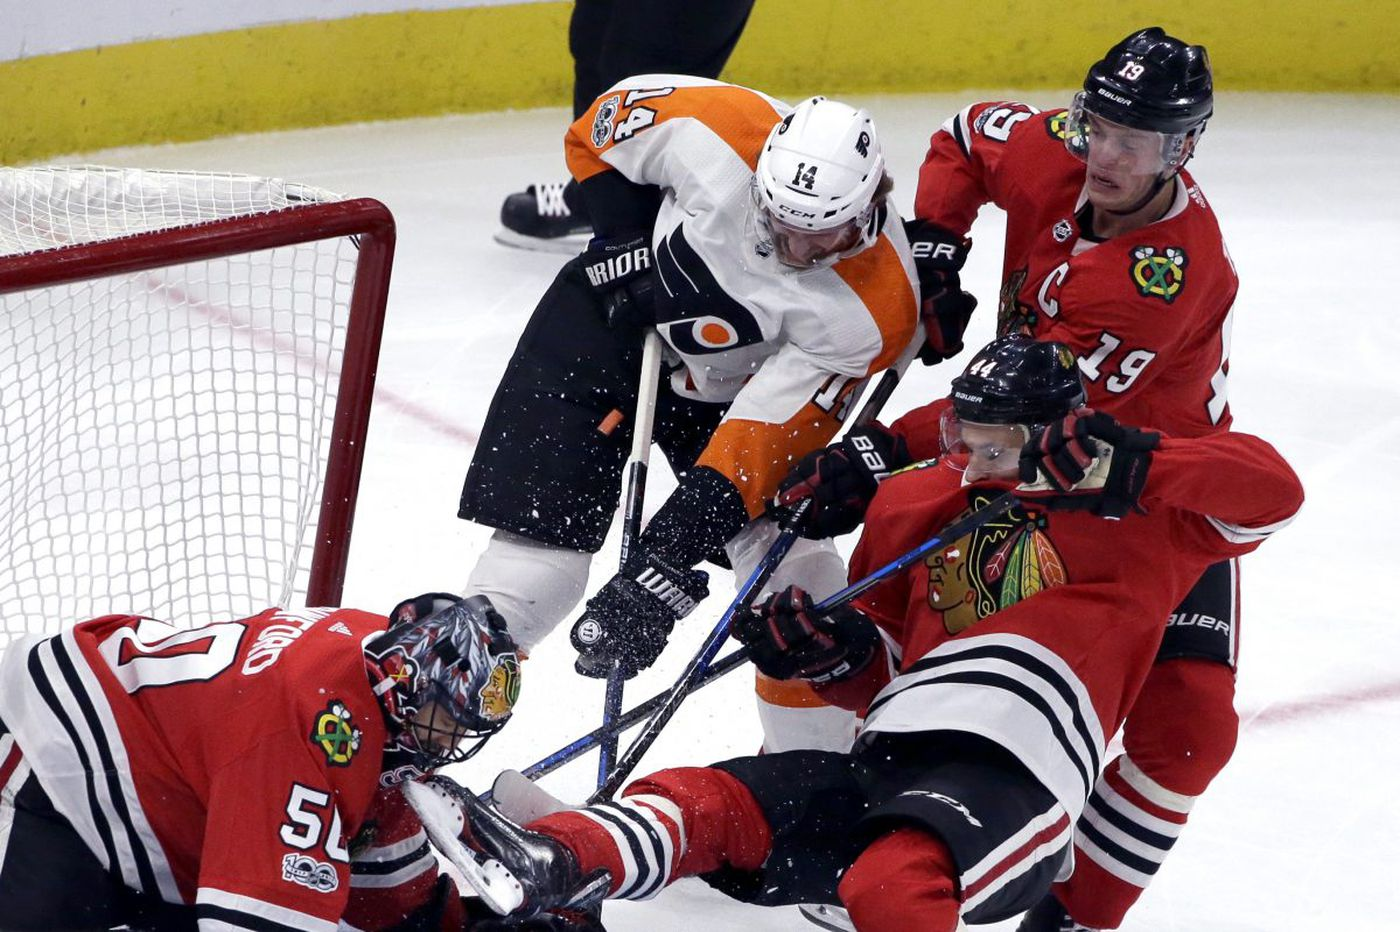 Flyers-Blackhawks preview: Chicago reuniting its top line